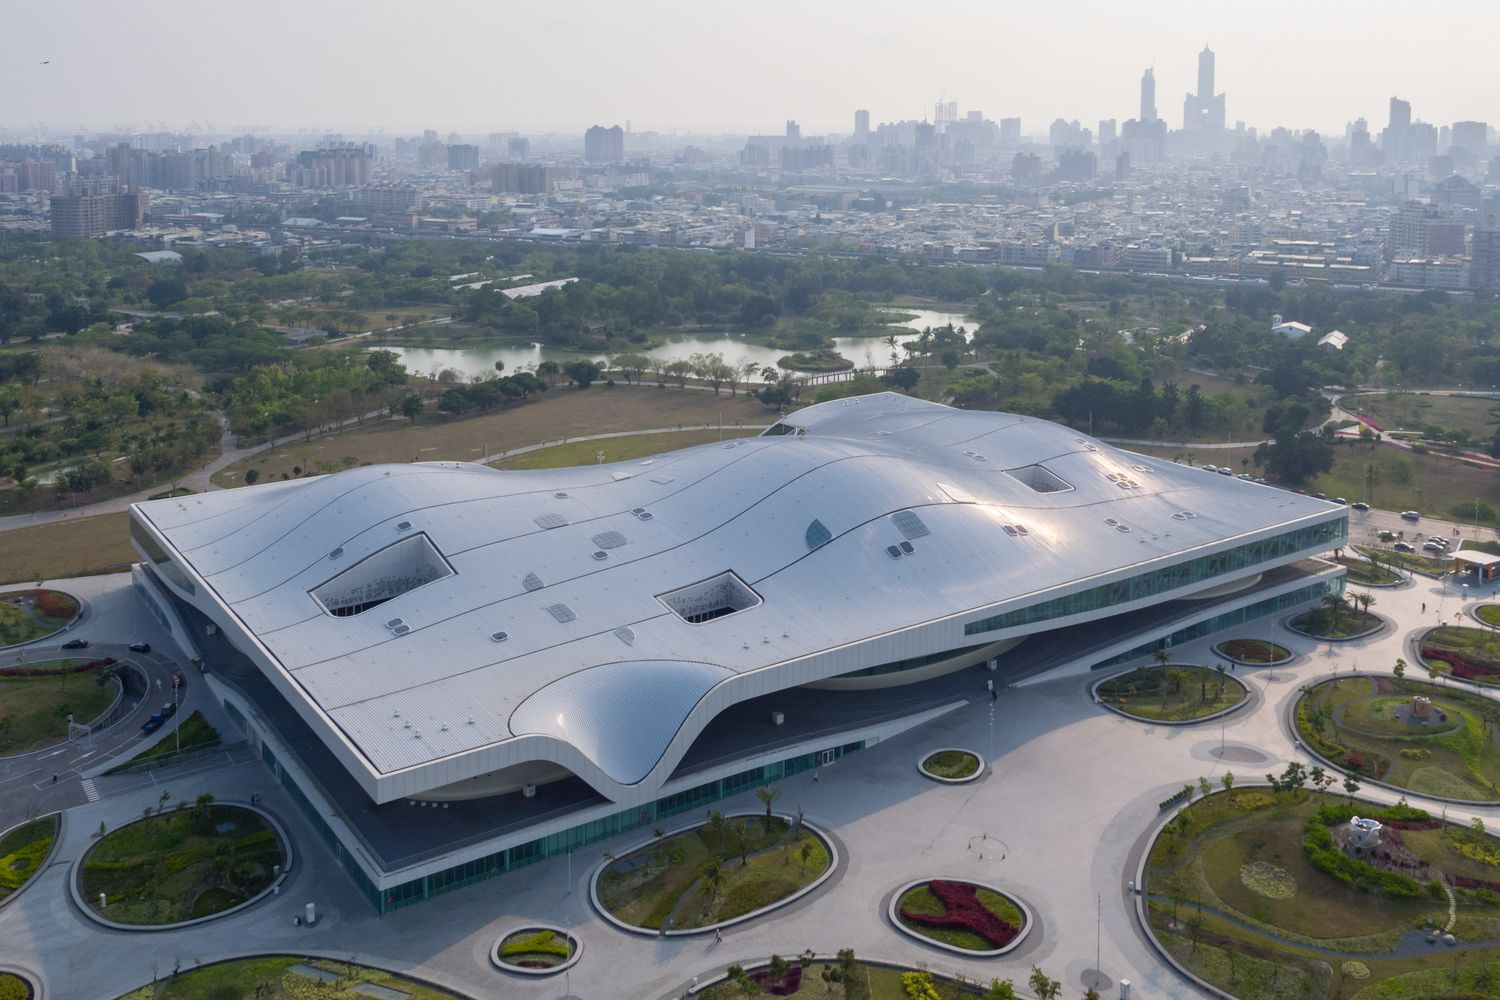 Gallery Of World S Largest Single Roof Performing Arts Center By Mecanoo Nears Completion In Taiwan 3 Architecture Kaohsiung Performing Arts Center